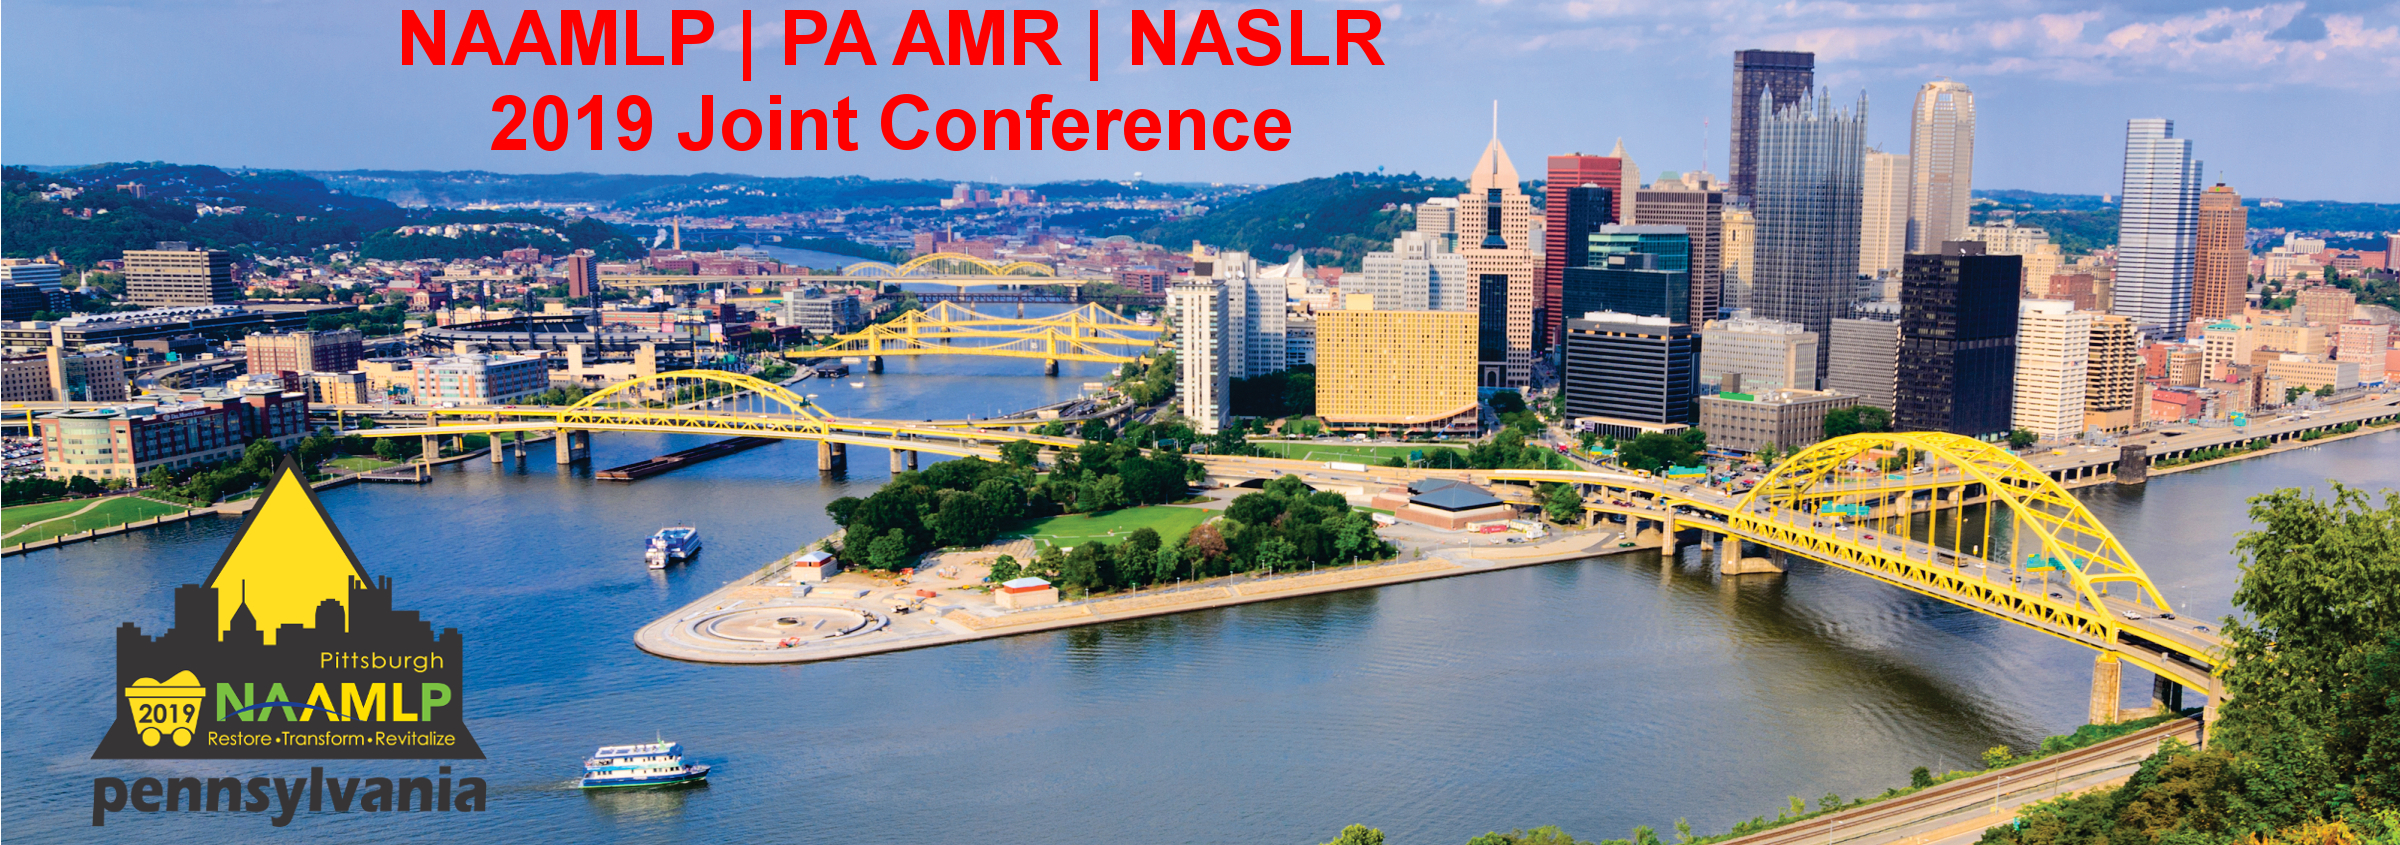 2019 NAAMLP / PA AMR / NASLR Joint Conference – Restore | Transform